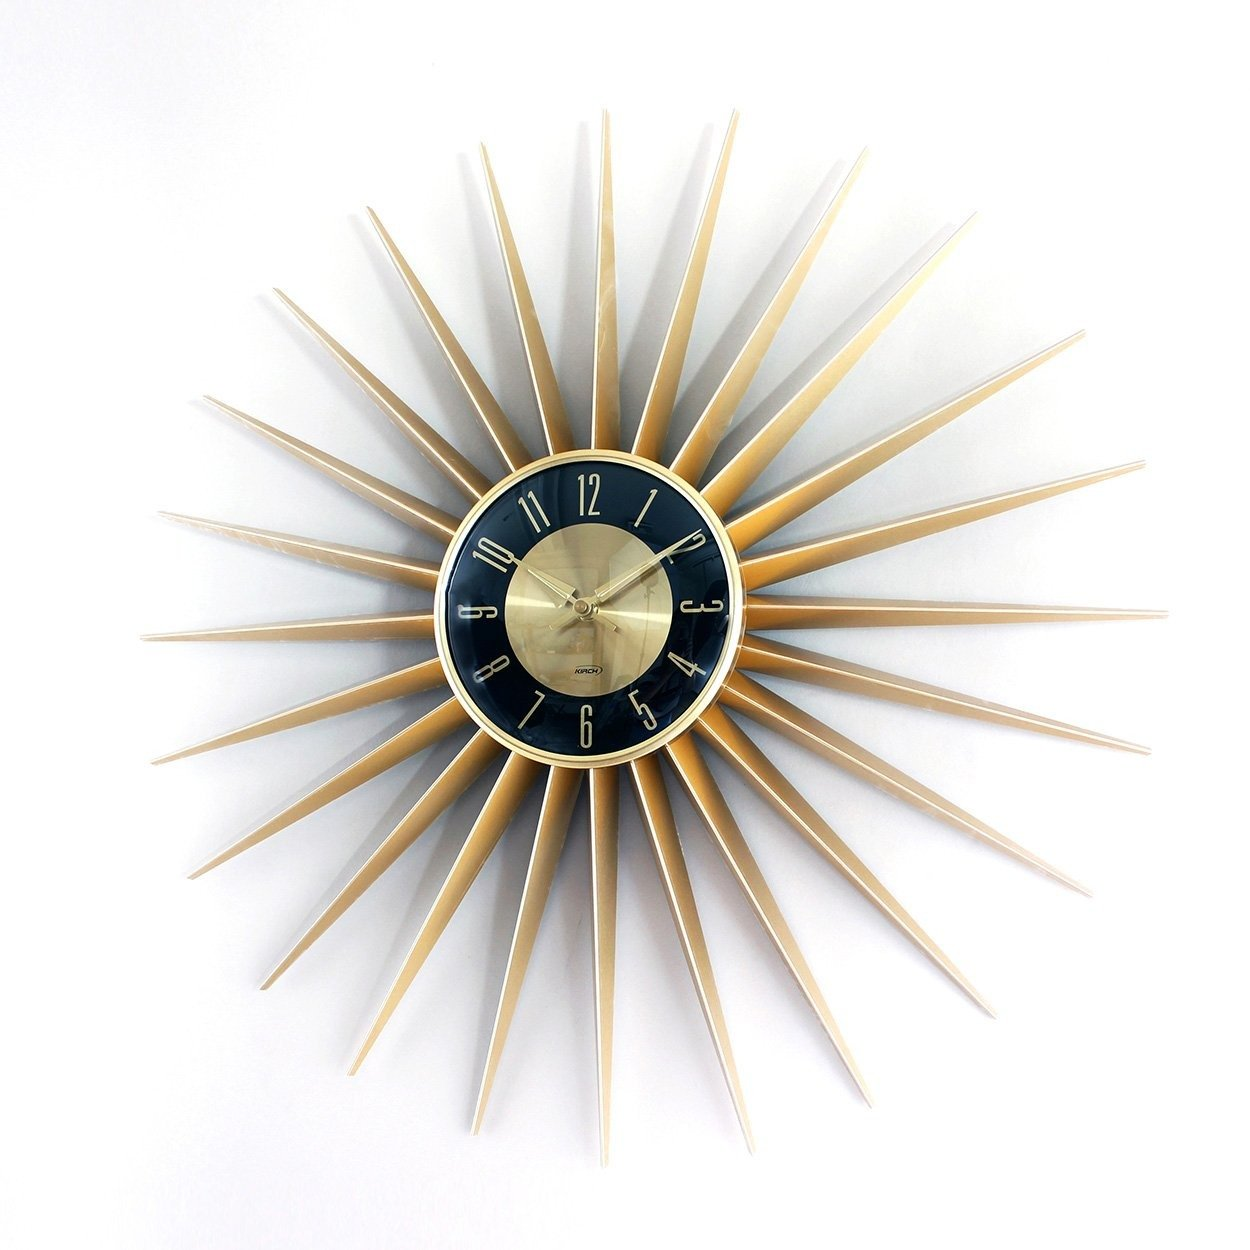 [1688SUNSHINEG24] Sunburst clock